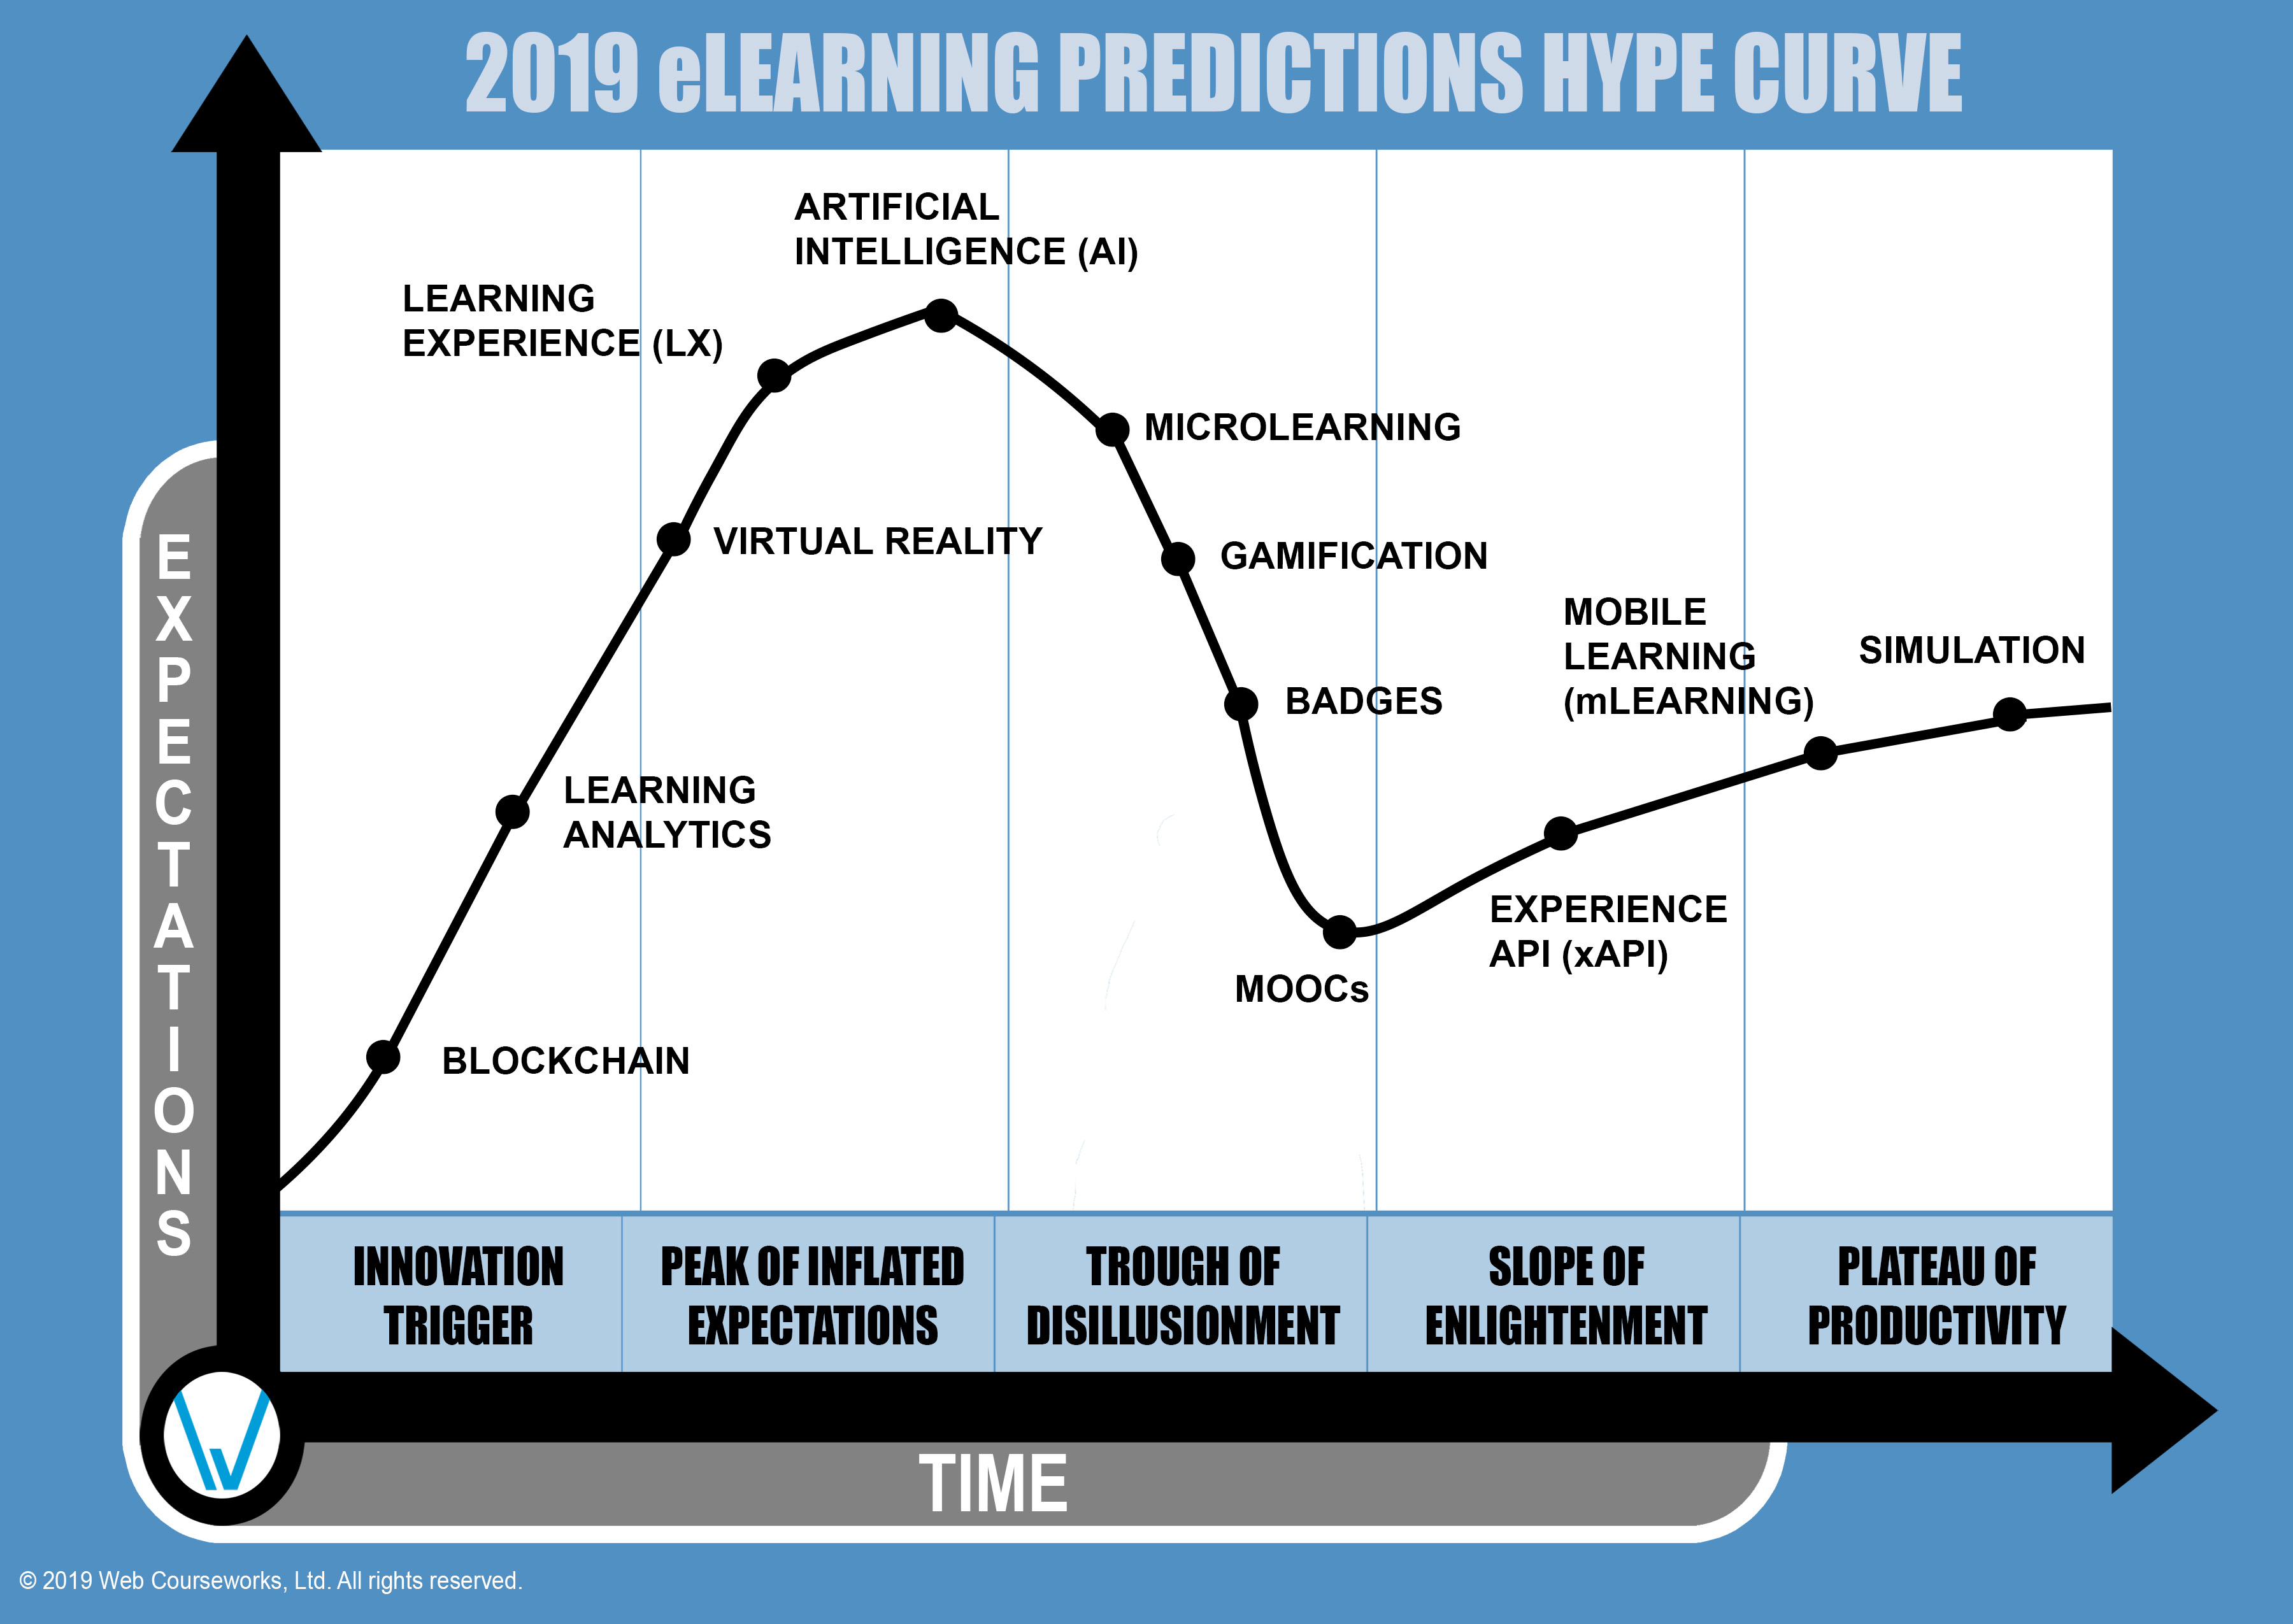 2019 eLearning Predictions Hype Curve